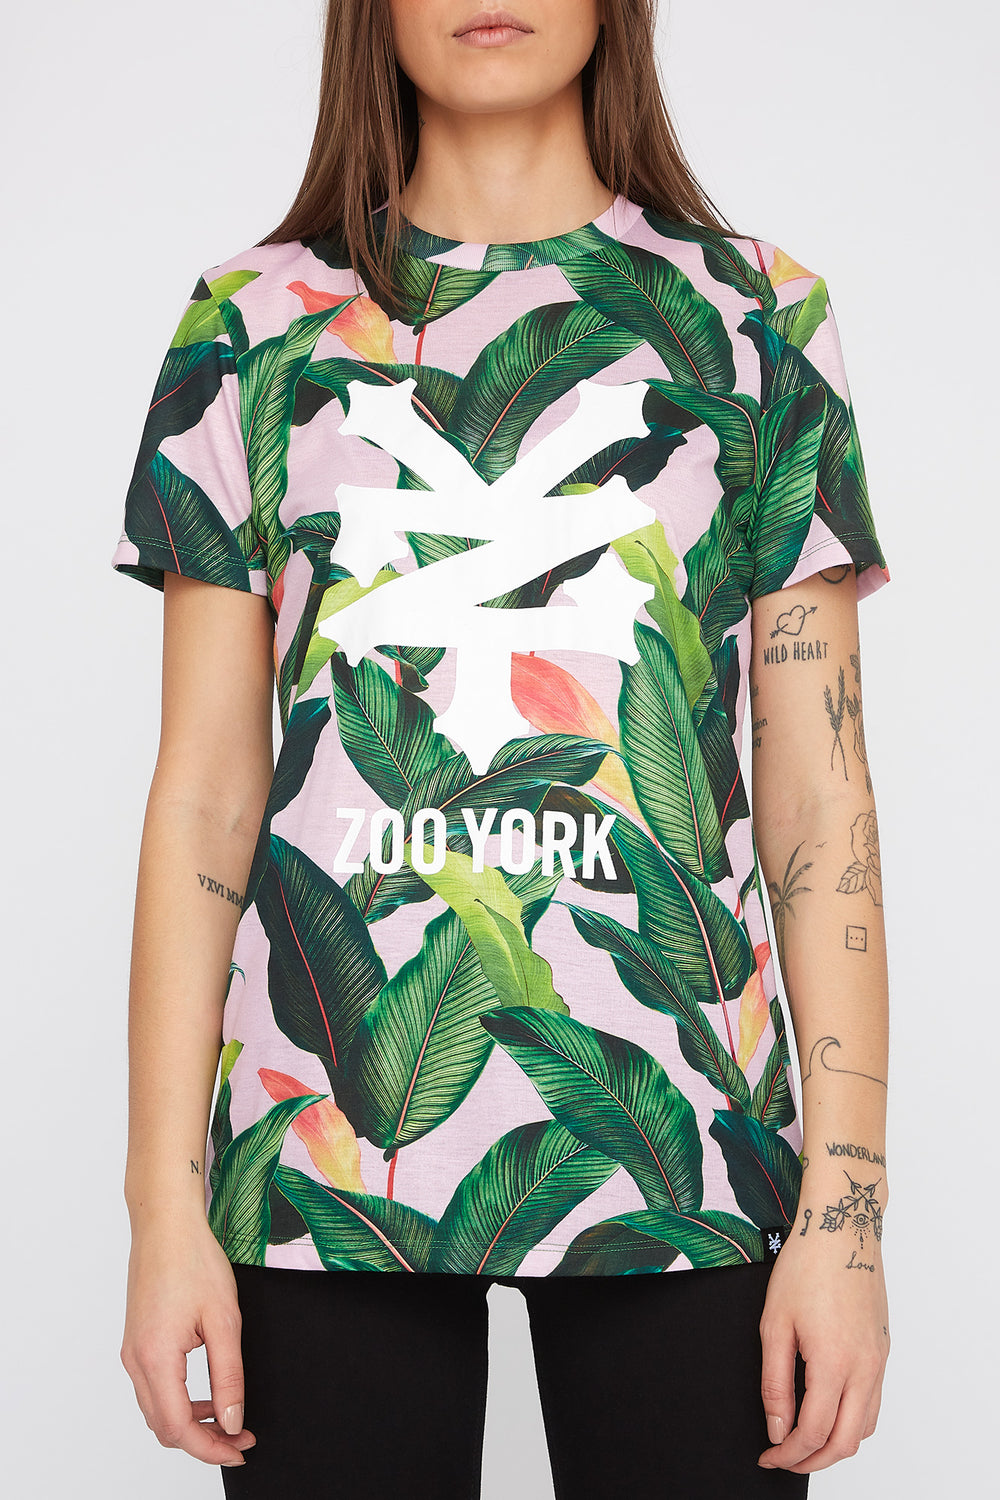 Zoo York Womens Tropical Print T-Shirt Multi